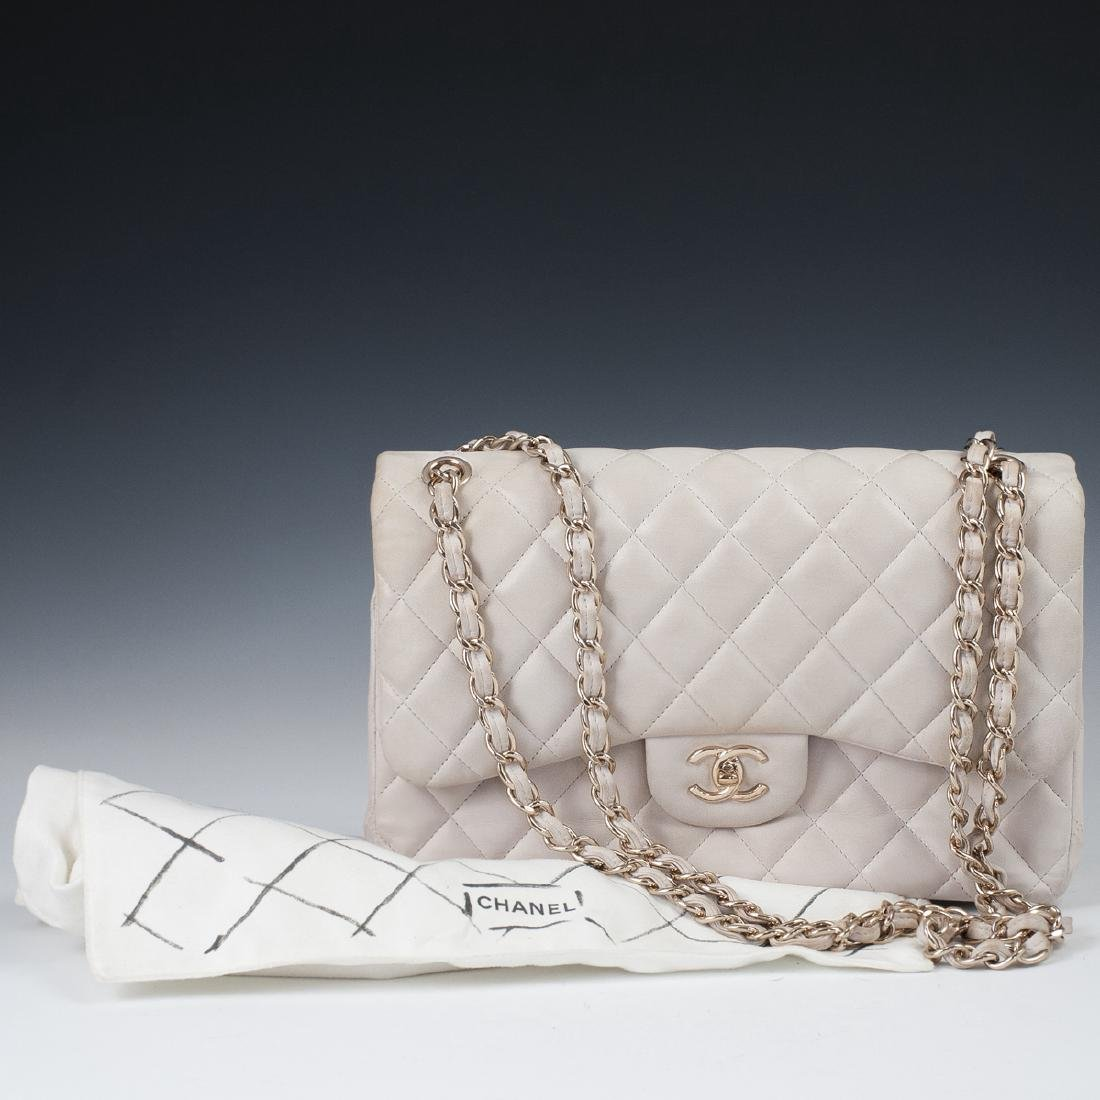 Chanel Light Beige Calfskin Flap Bag